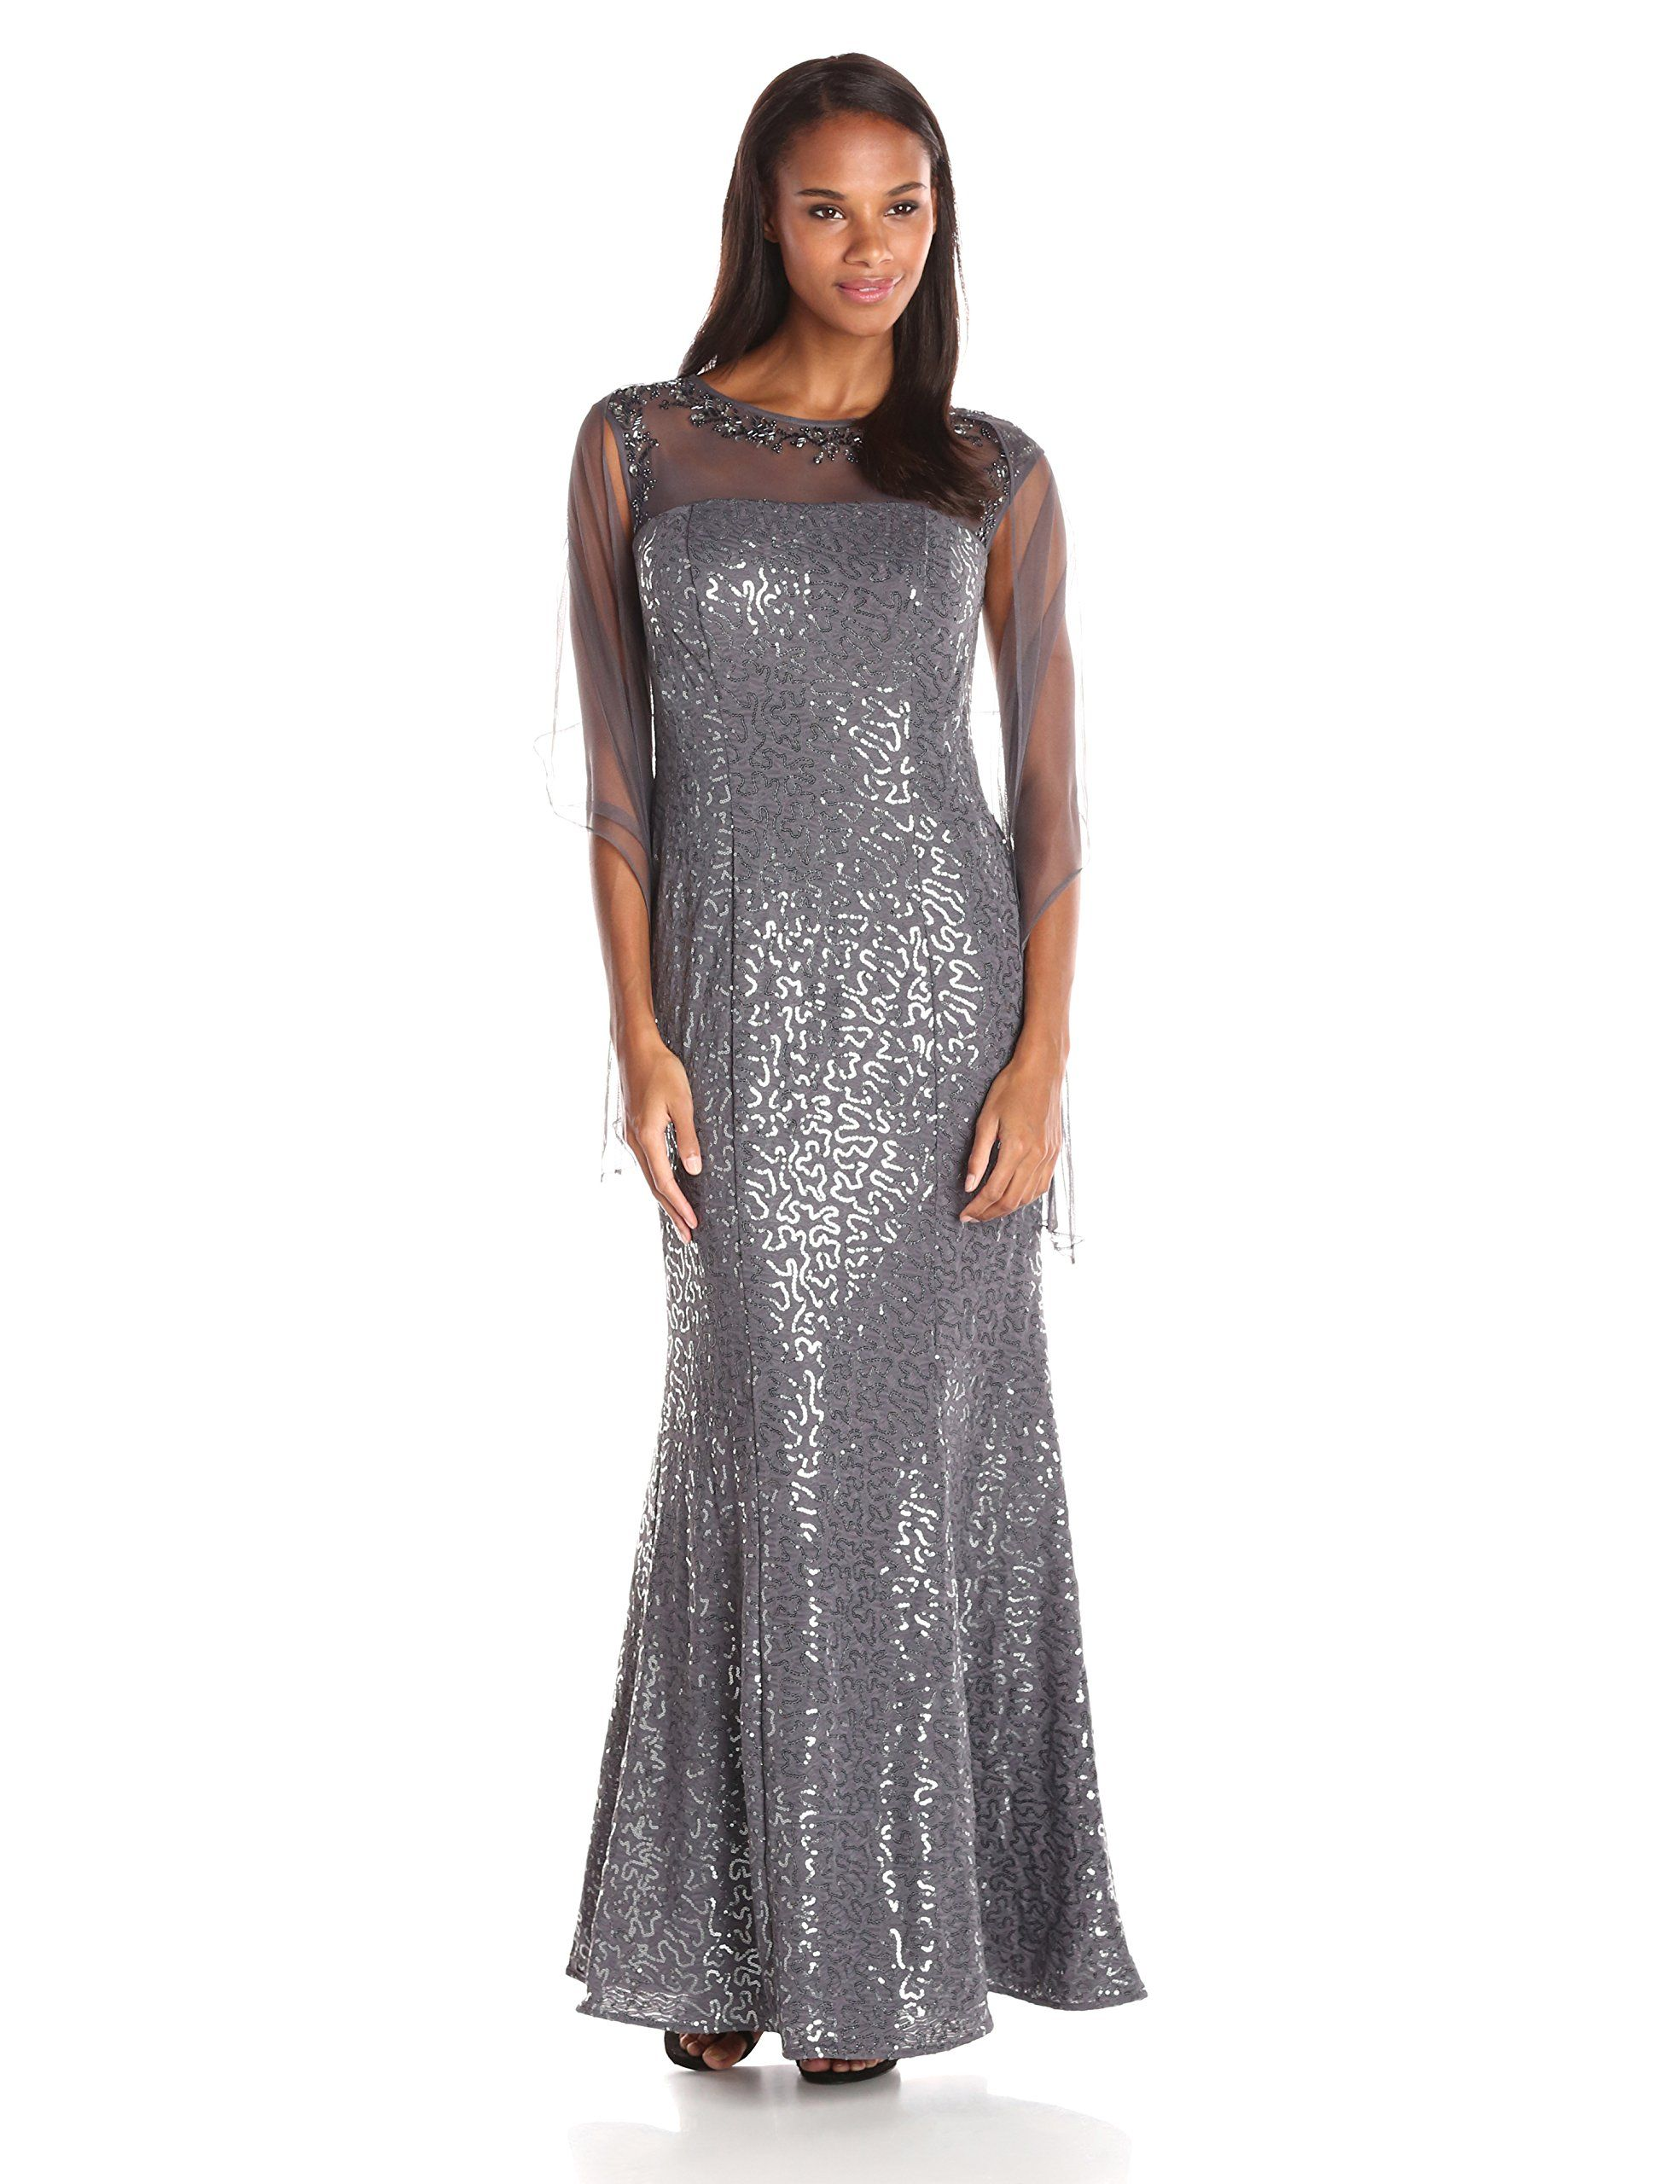 Ignite womenus illusion mesh embellished sequined evening gown